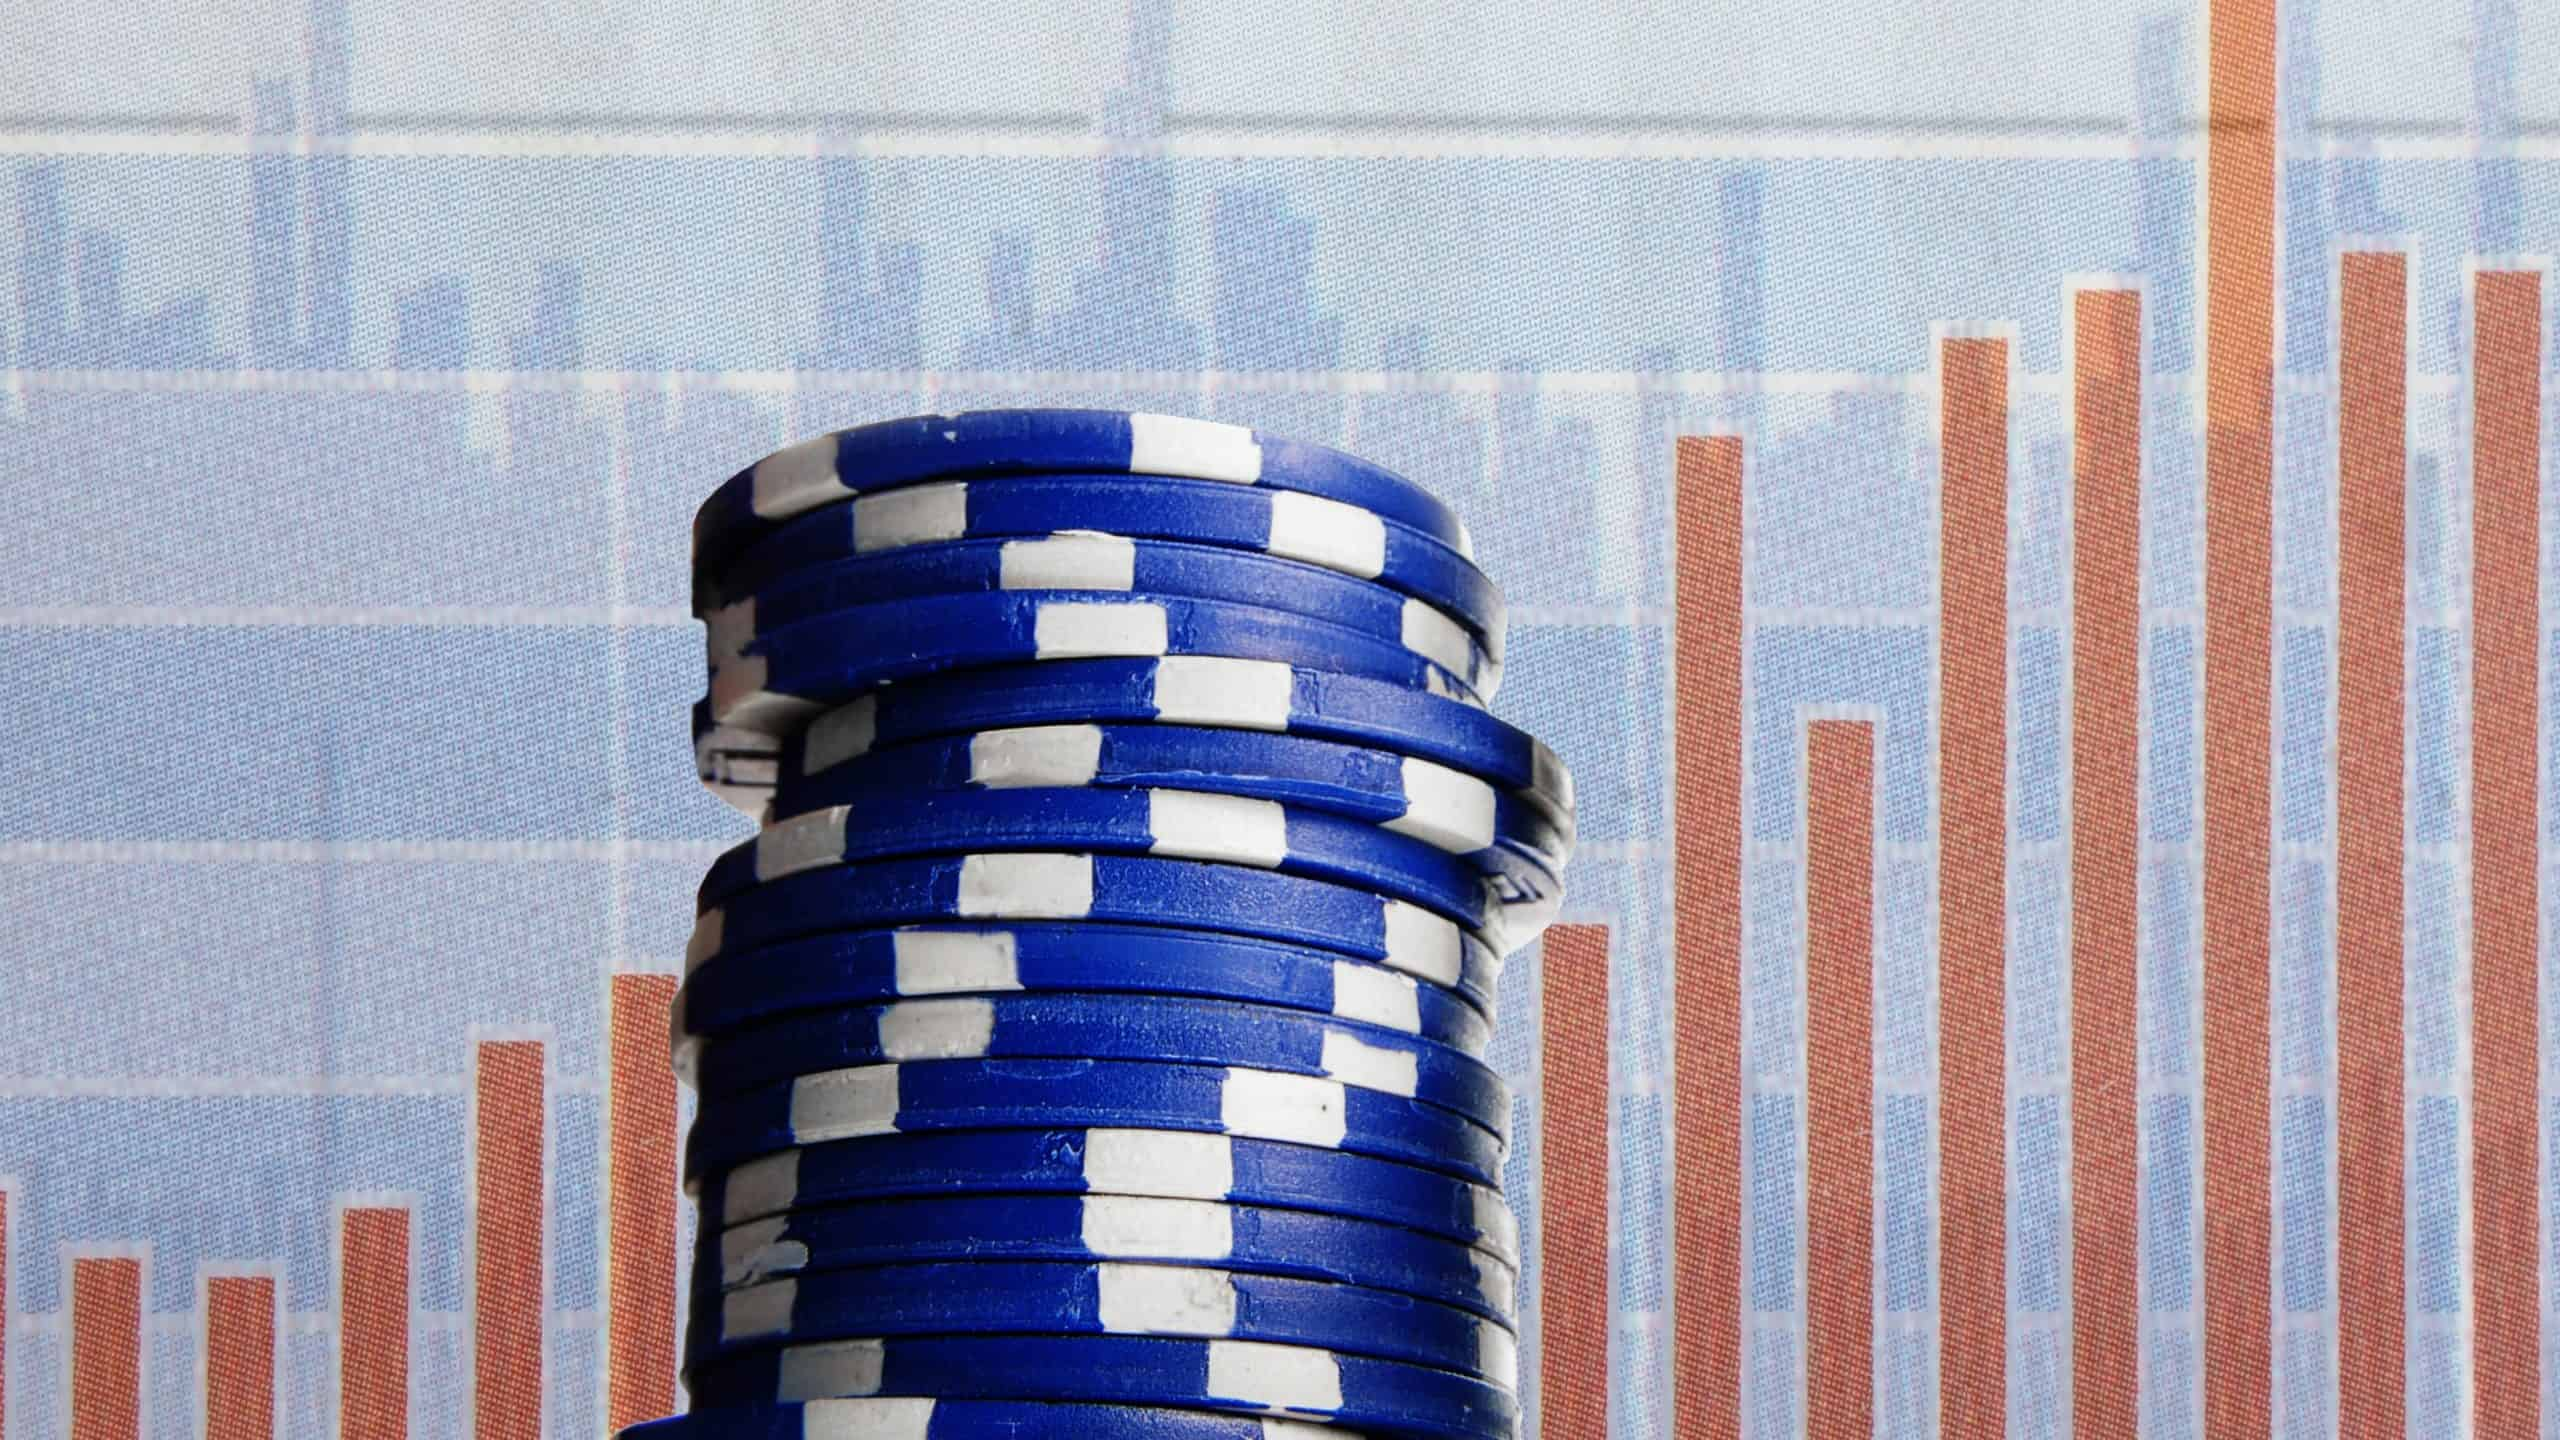 Pile of blue casino chips in front of bar graph, asx 200 shares, blue chip shares